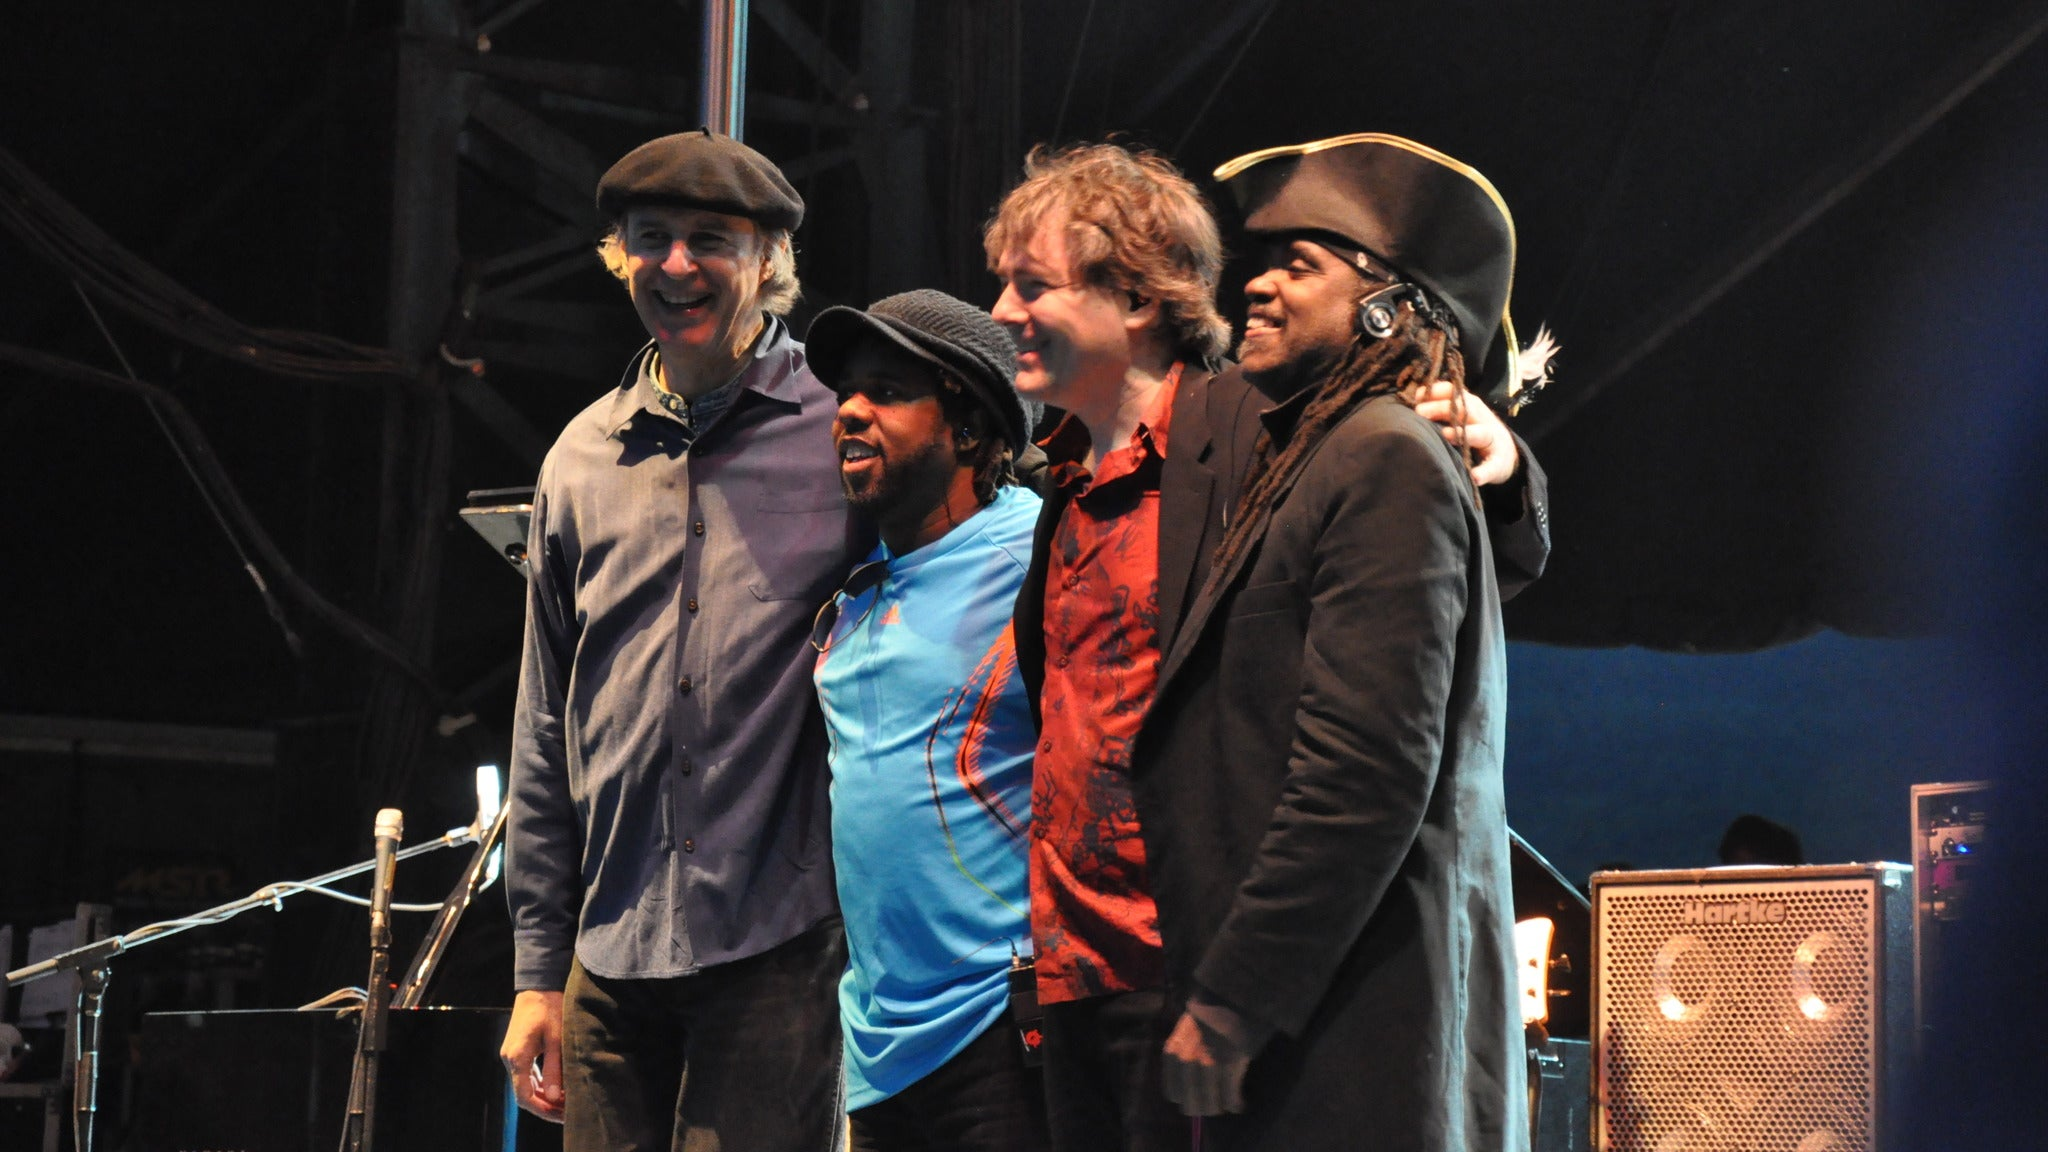 Bela Fleck & The Flecktones at Community Arts Center - PA